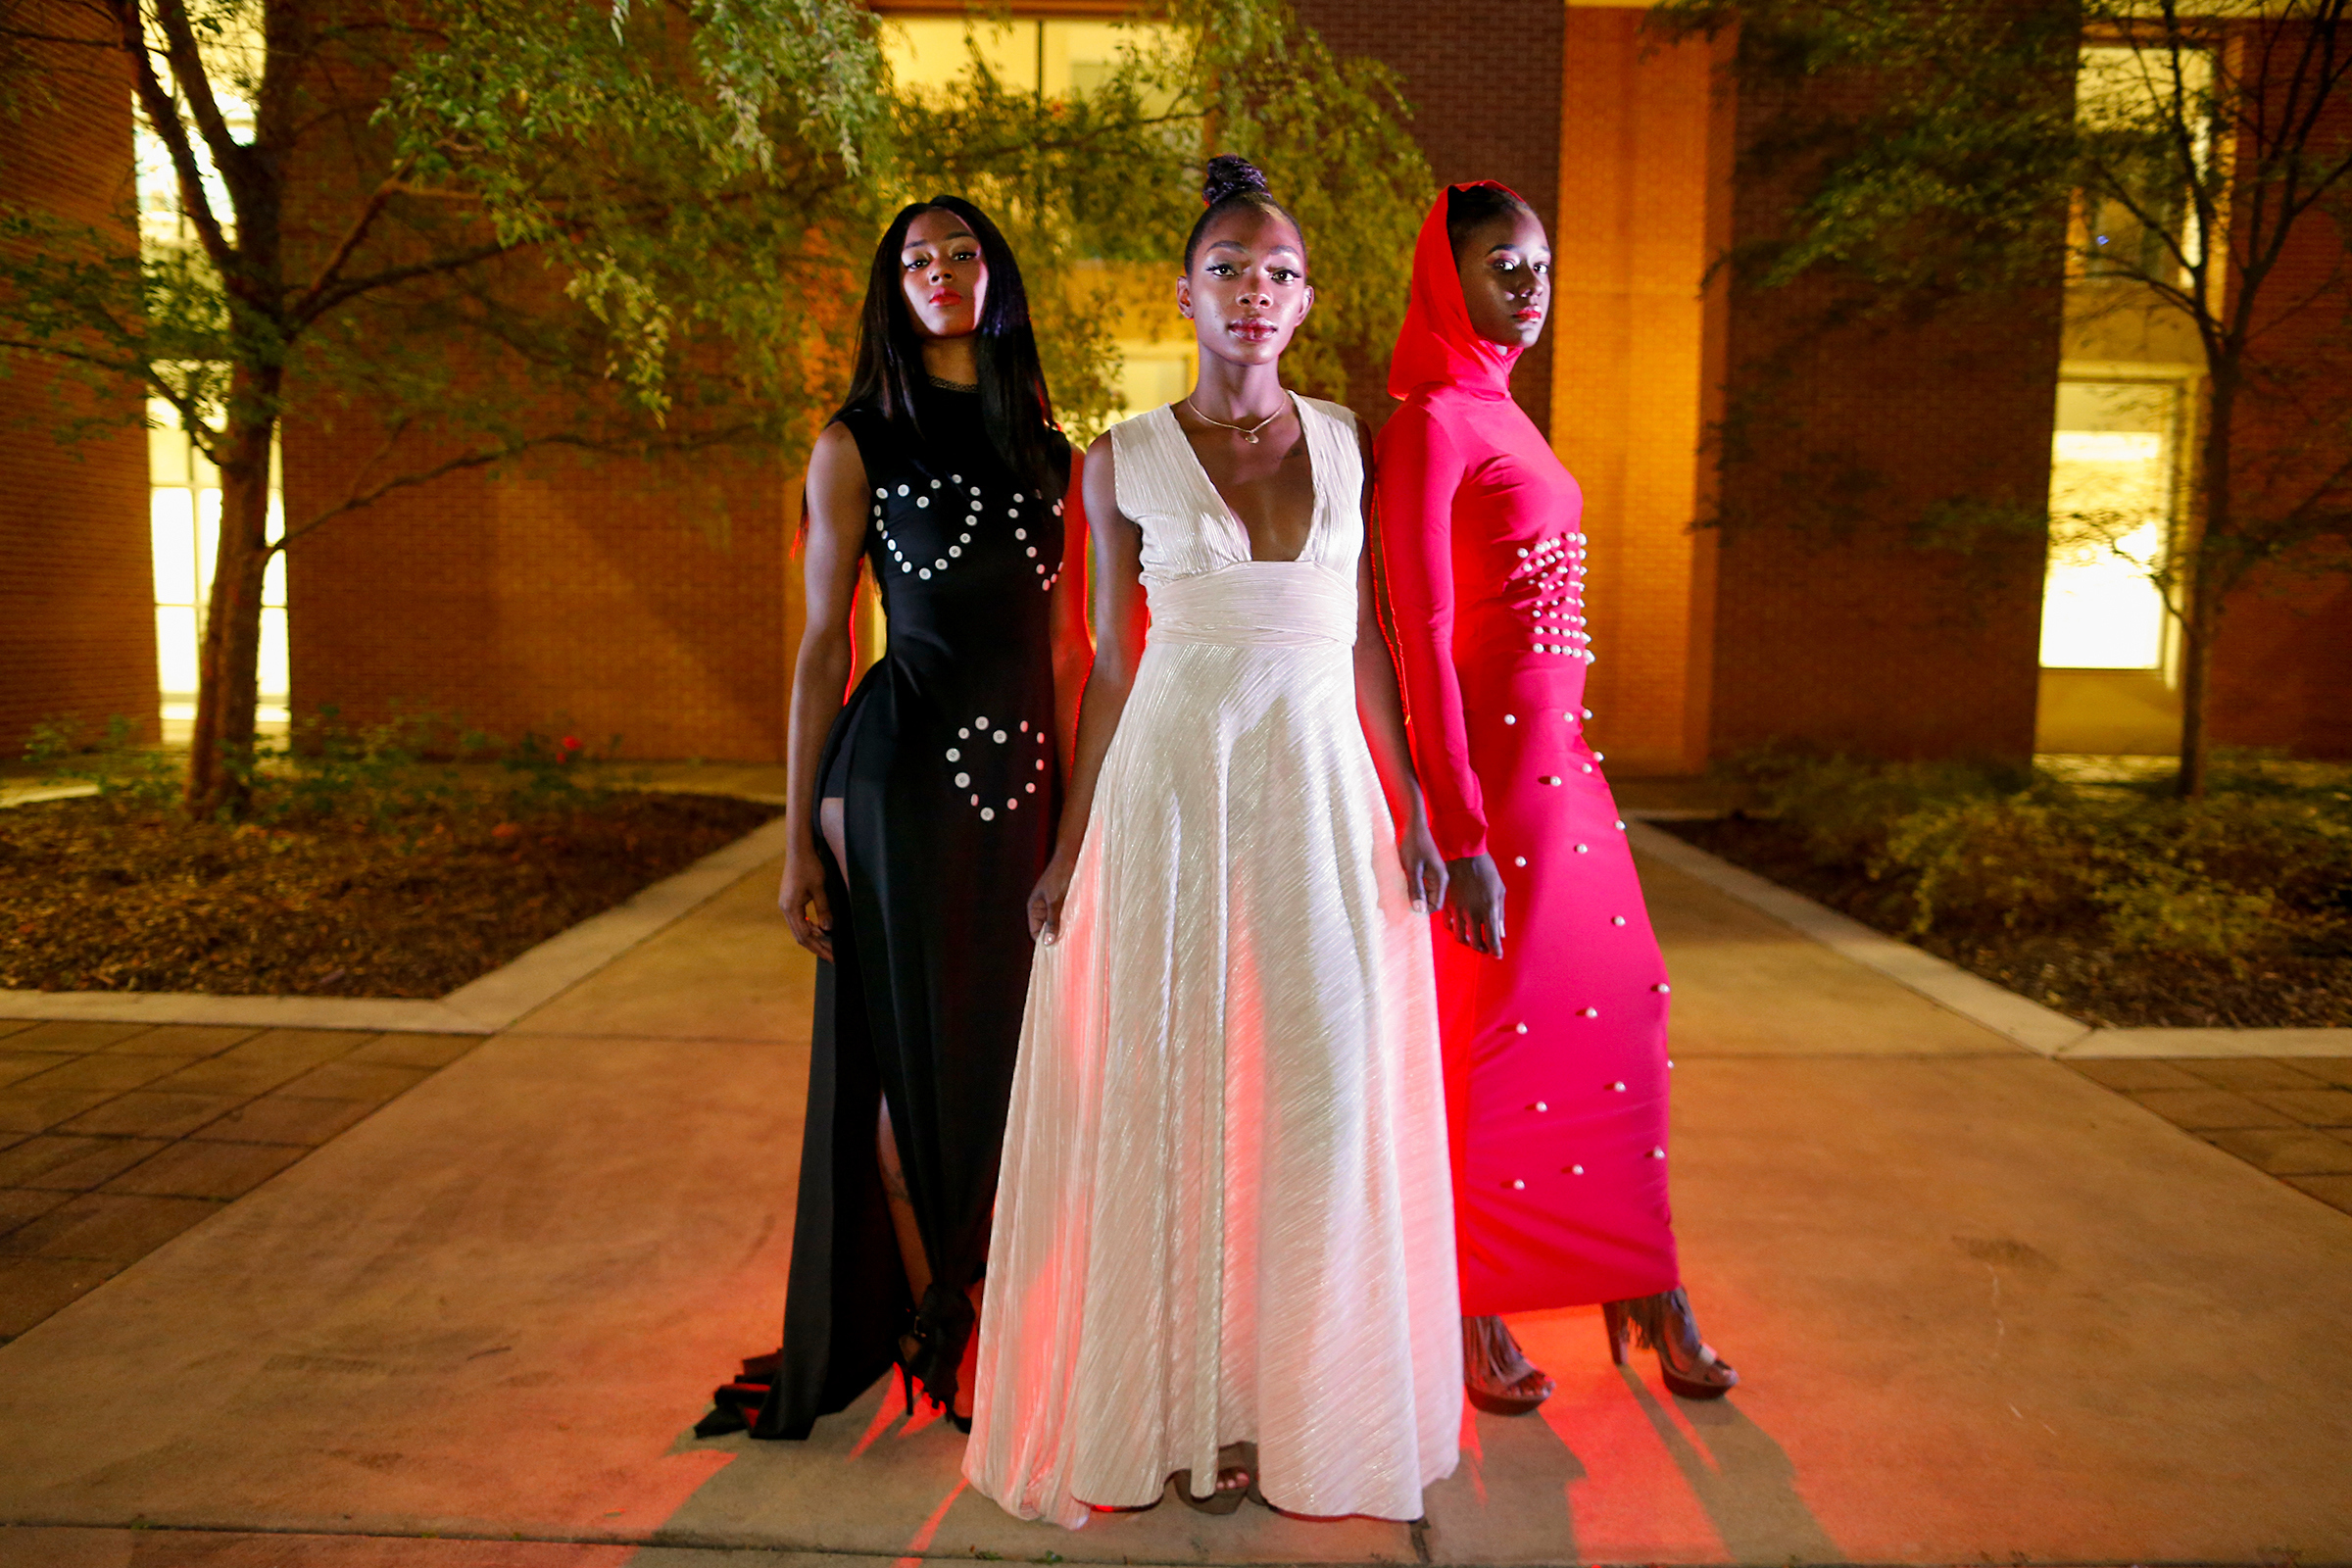 Student models from JSU and Tougaloo pose in Kelly type styles designed by Kamie's Kreations. (Photo by Charles A. Smith/JSU)